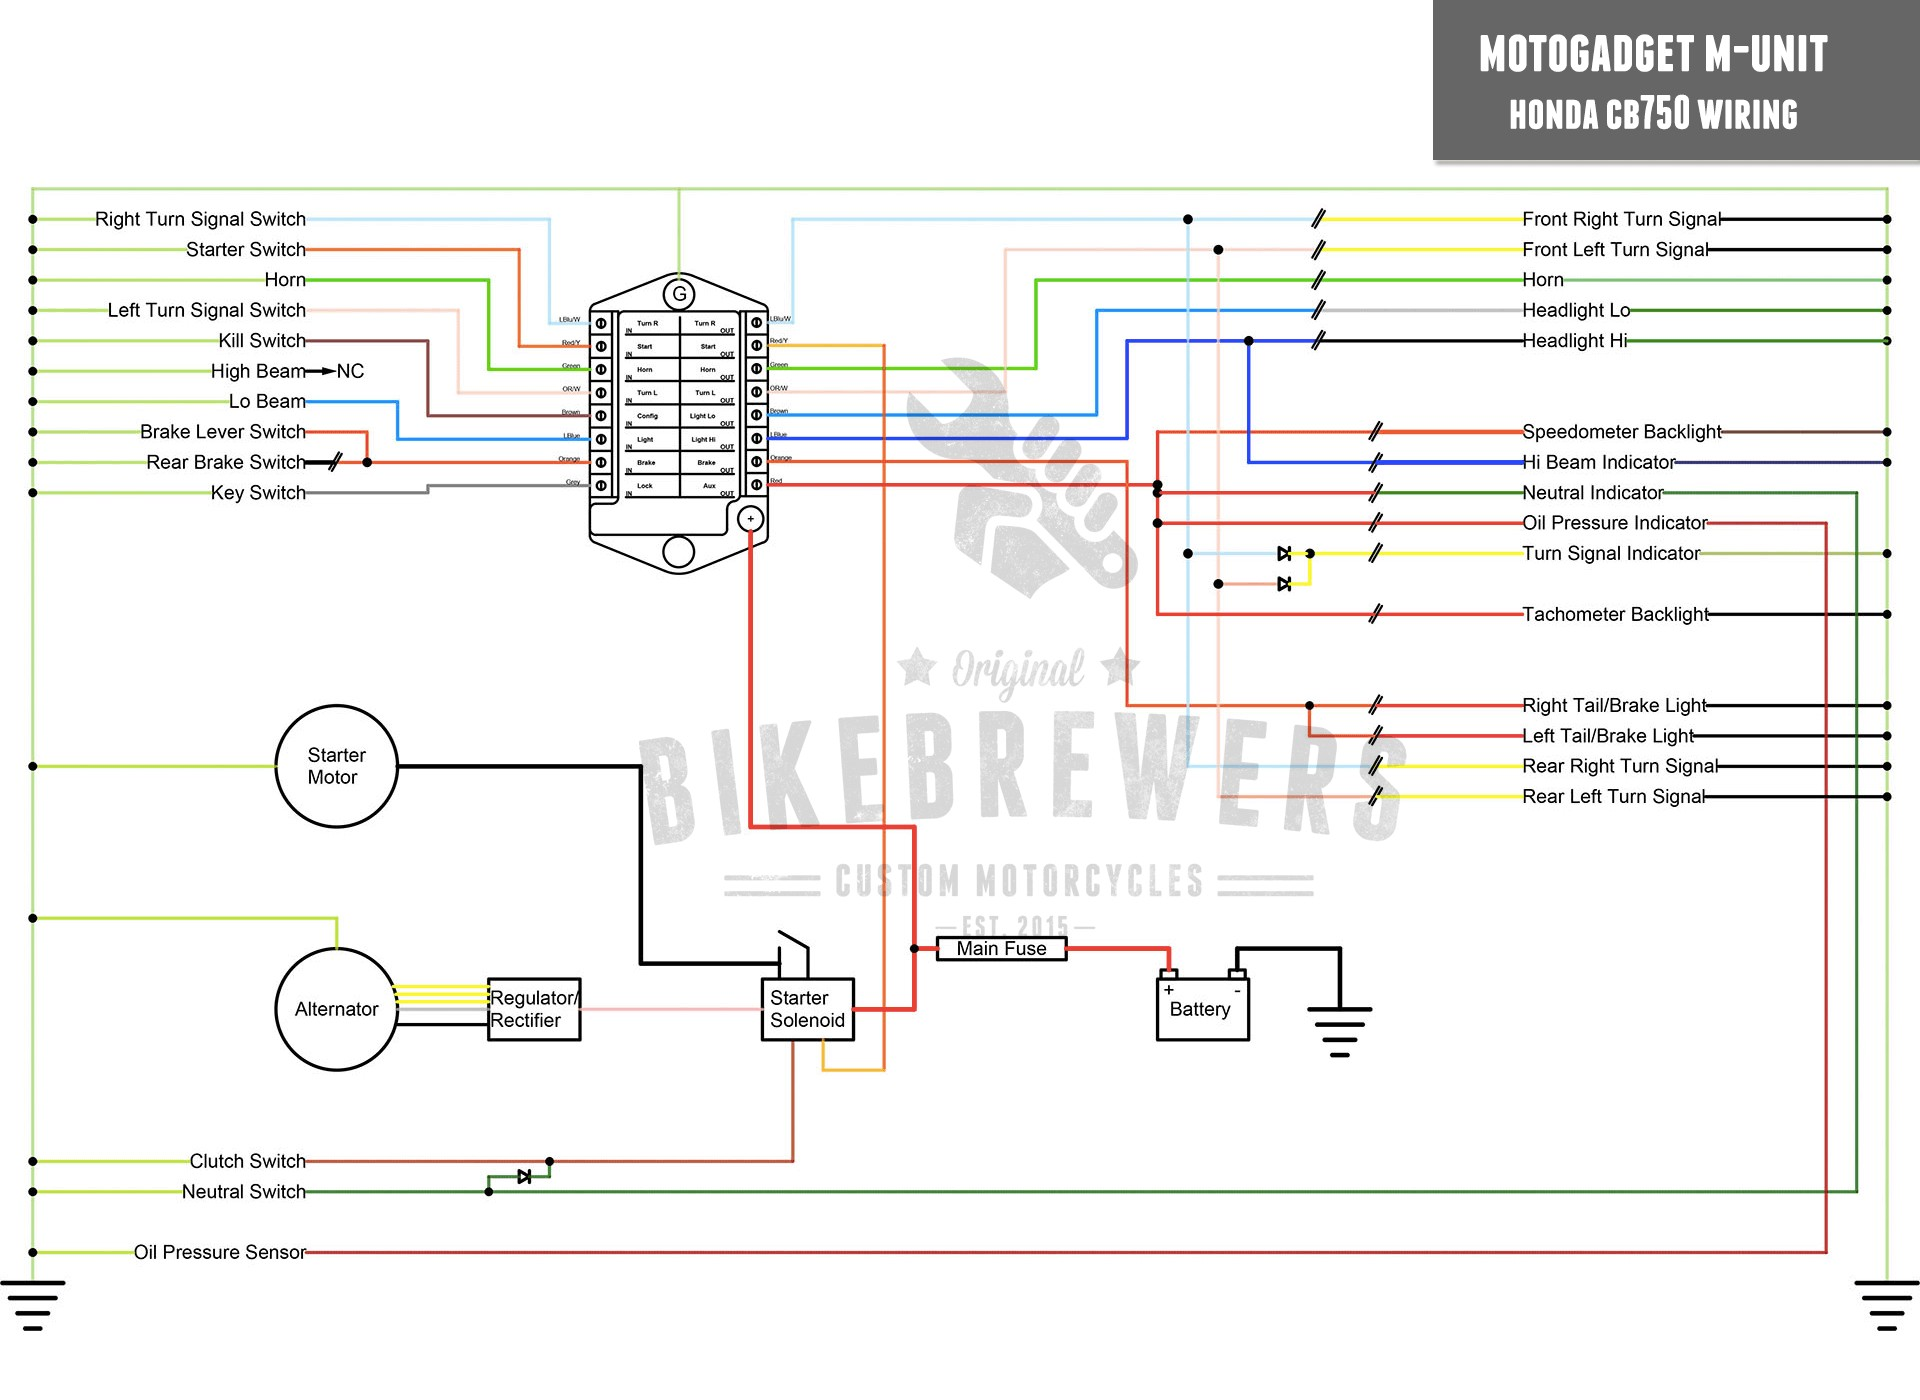 Fuse Box Diagram For 2004 Jeep Grand Cherokee Simple Guide About 1983 76 Ford Wiring Ke U2022 Free Laredo